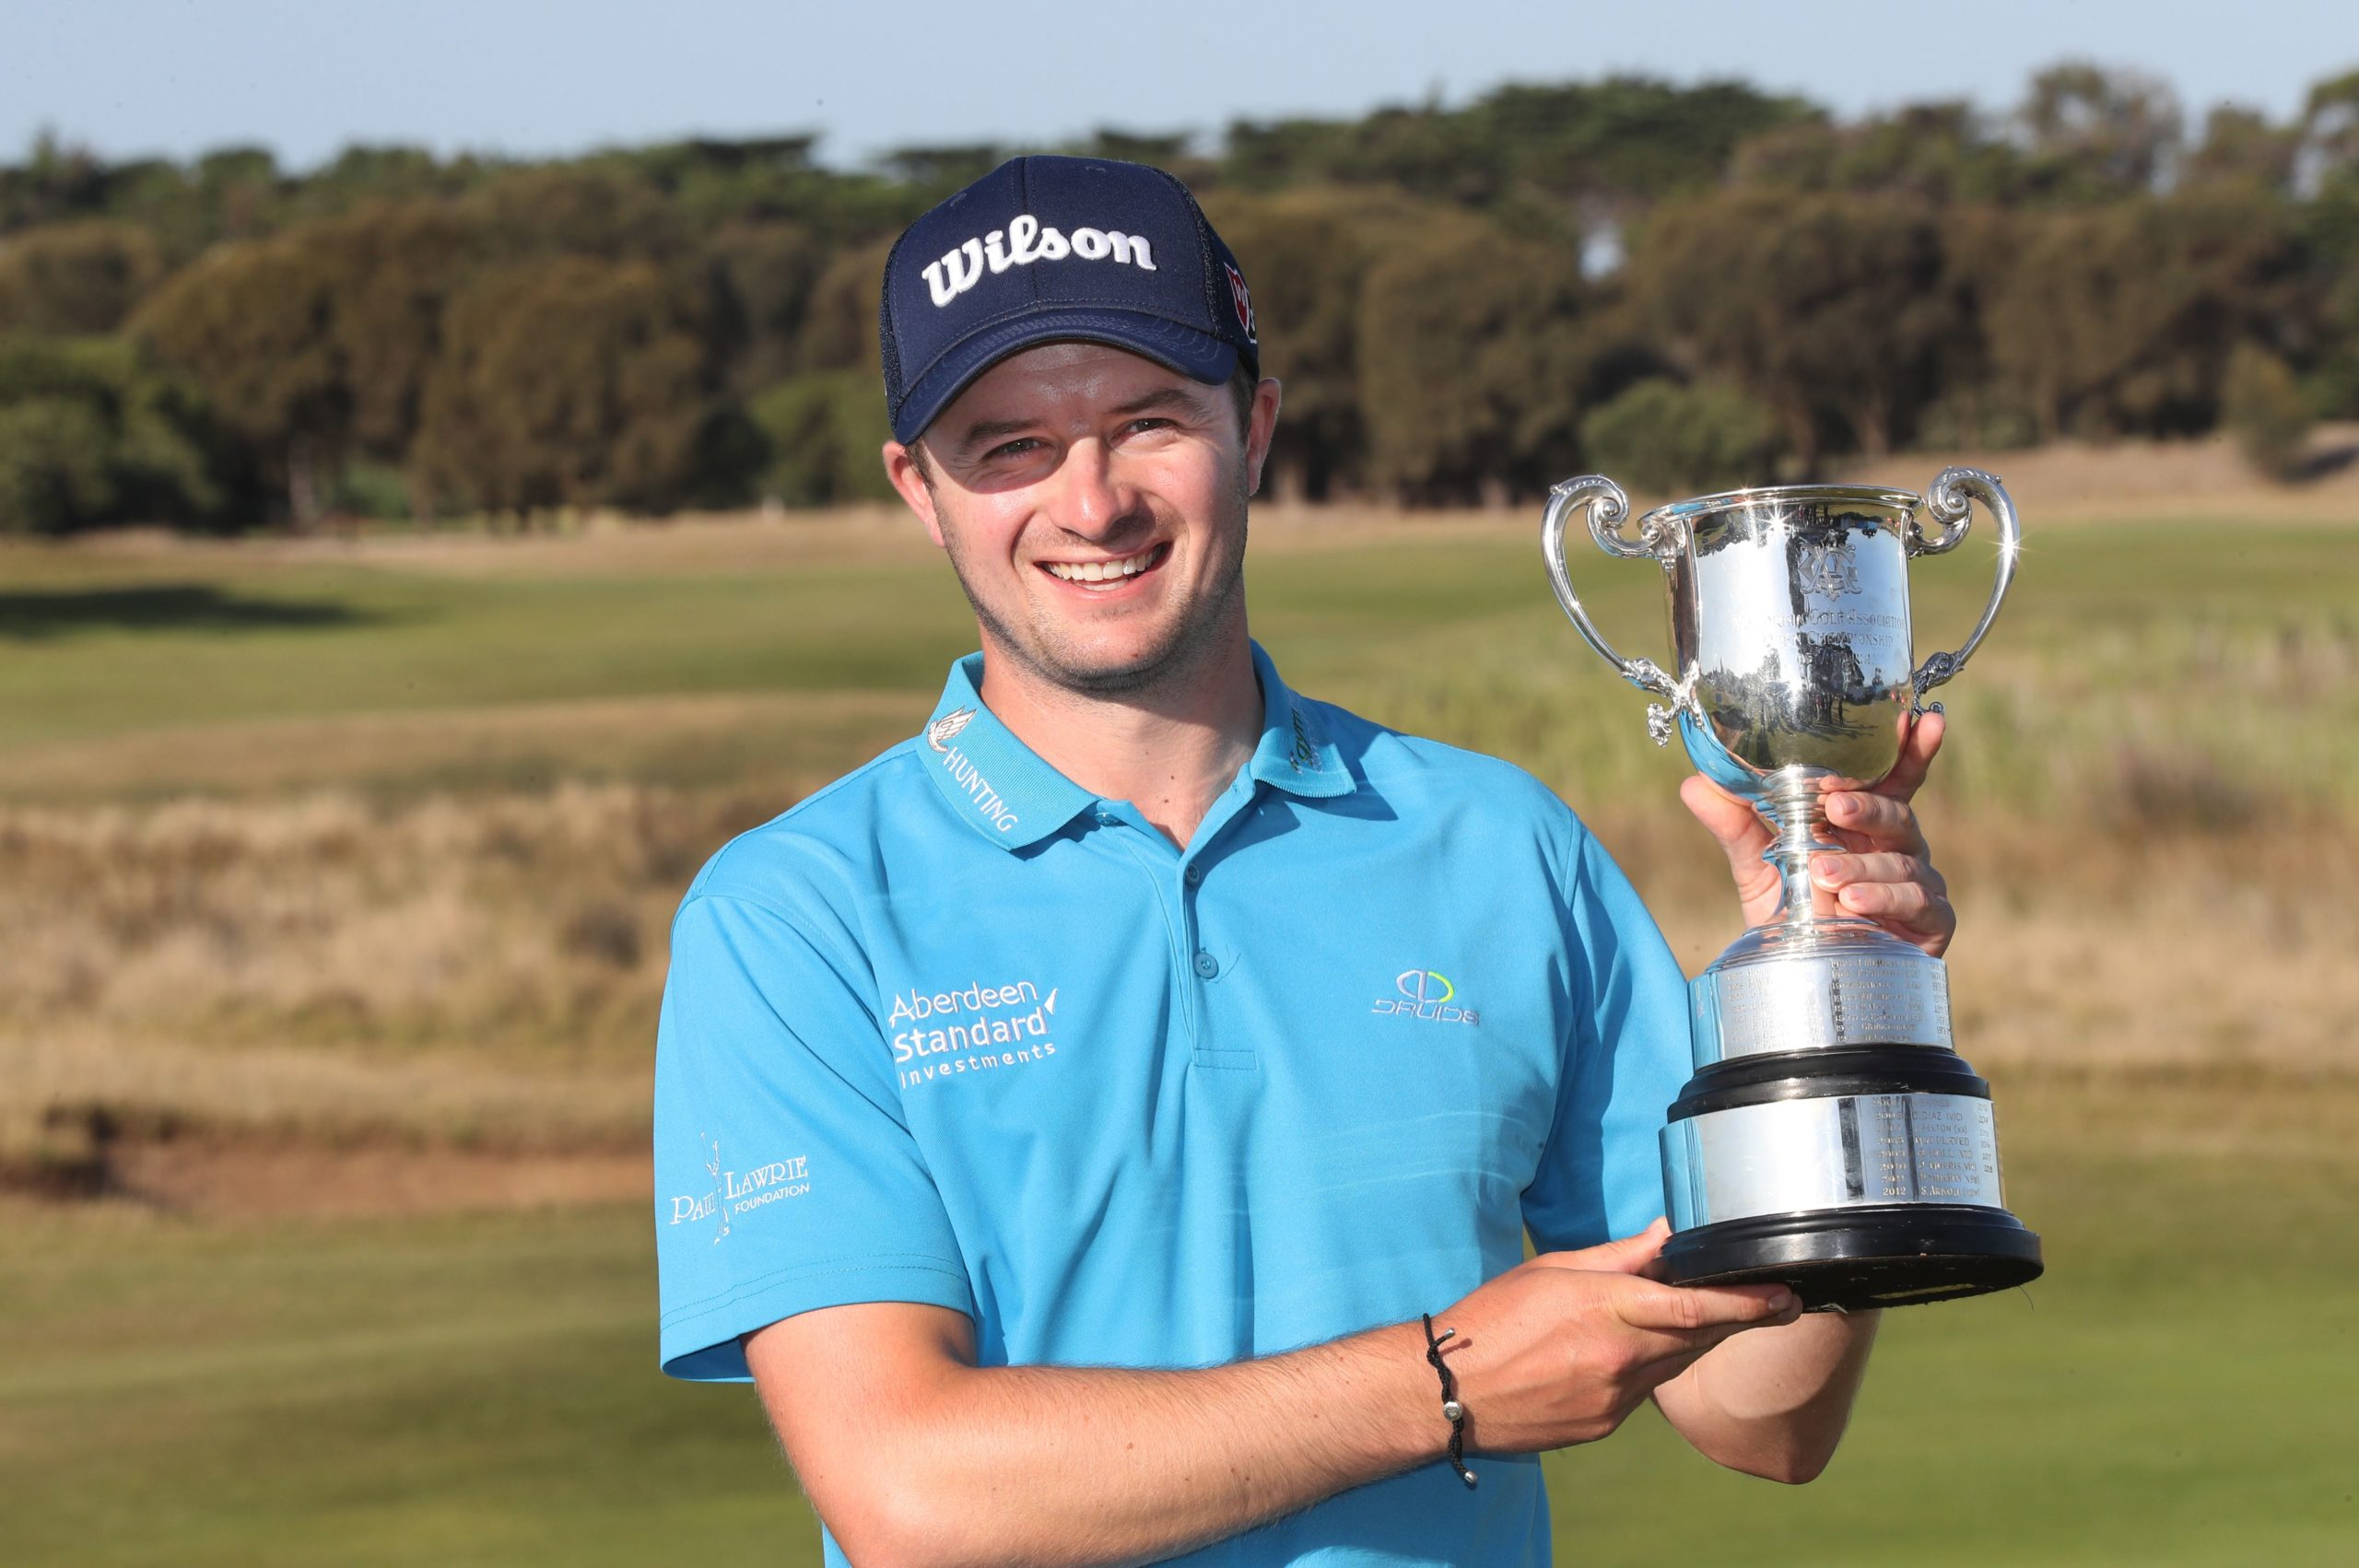 David Law of Scotland poses with the trophy after winning the Men's Victorian Open at 13th Beach Golf Links in Melbourne, Australia. Photo by DAVID CROSLING/EPA-EFE/Shutterstock